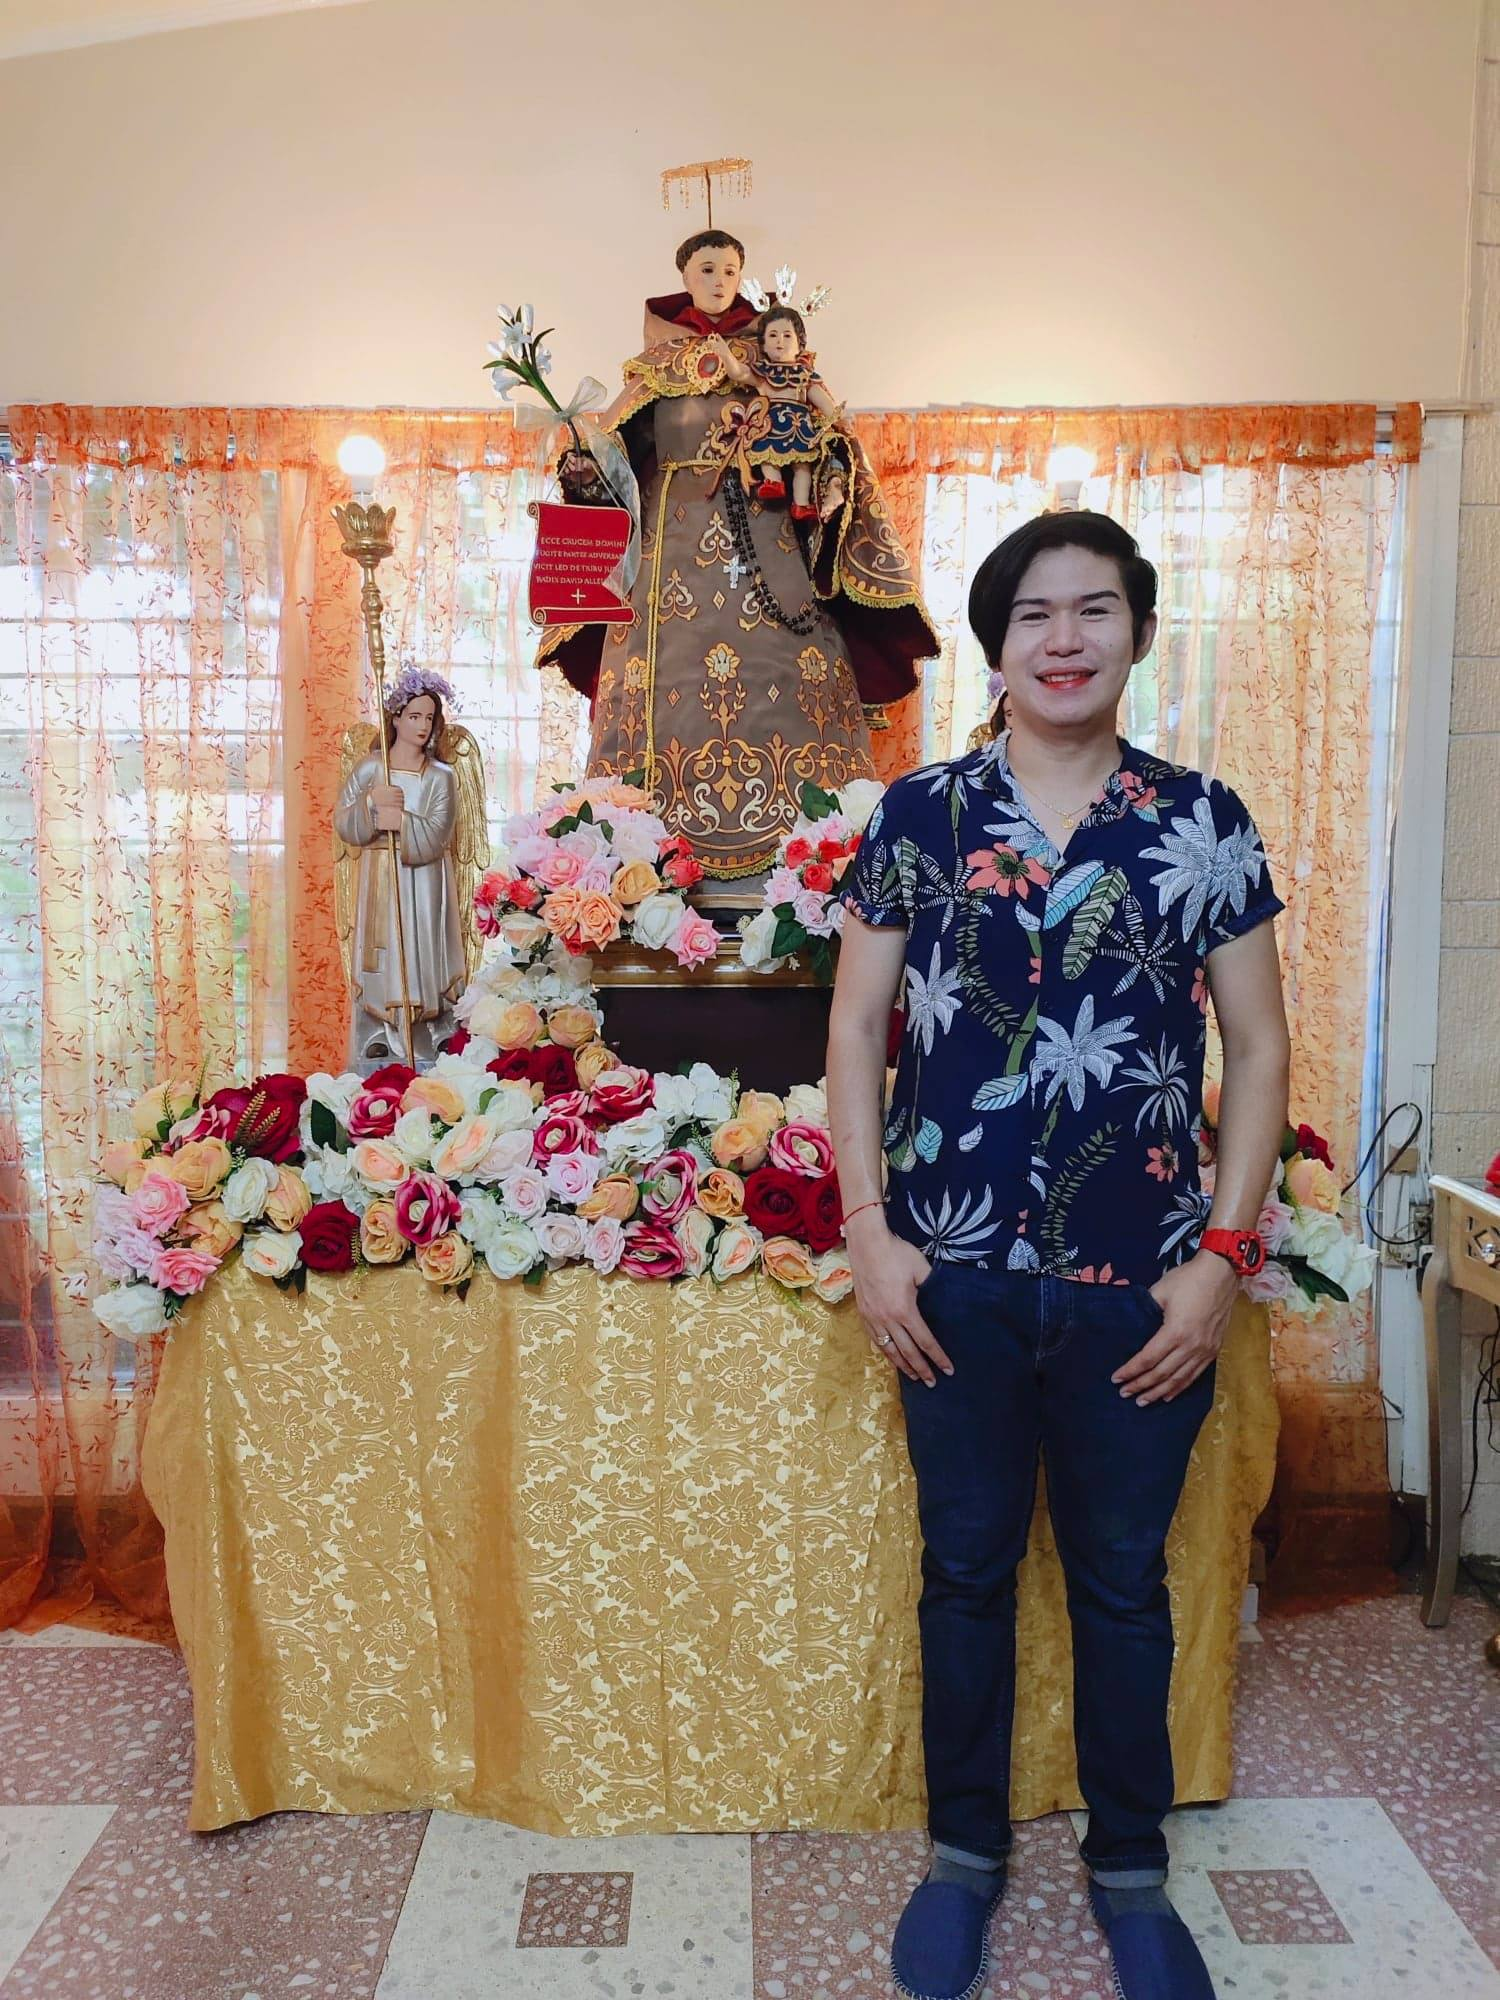 Bosconian Marian Devotee promotes the Entrustment Prayer among fellow Front-liners